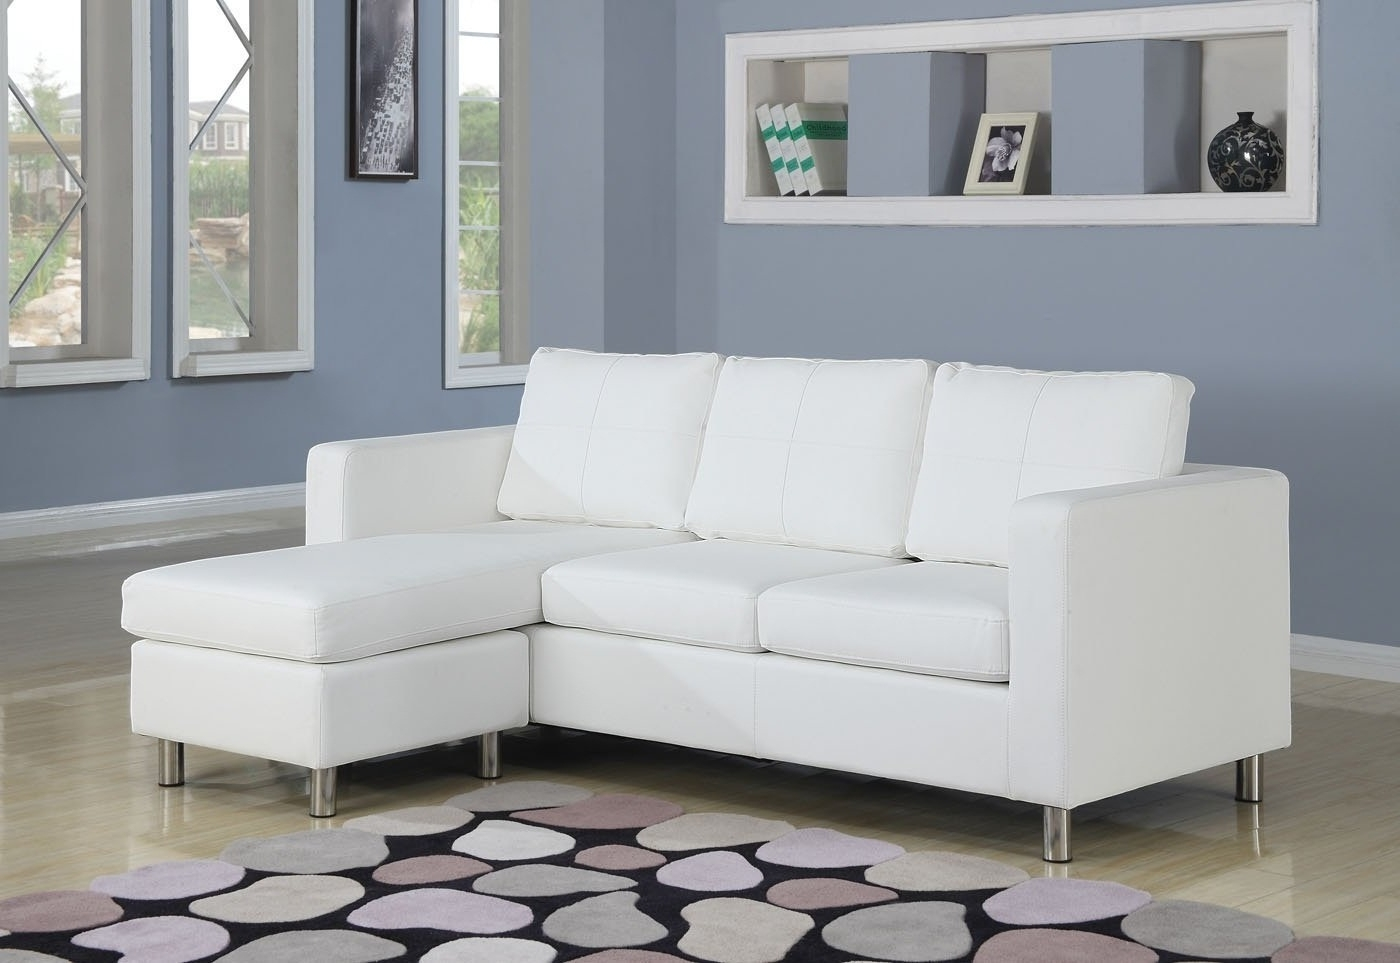 Small Sofas And Chairs For 2018 Sofa : U Shaped Sofa Ikea Darcy Sofa Ashley Furniture Small (View 16 of 20)